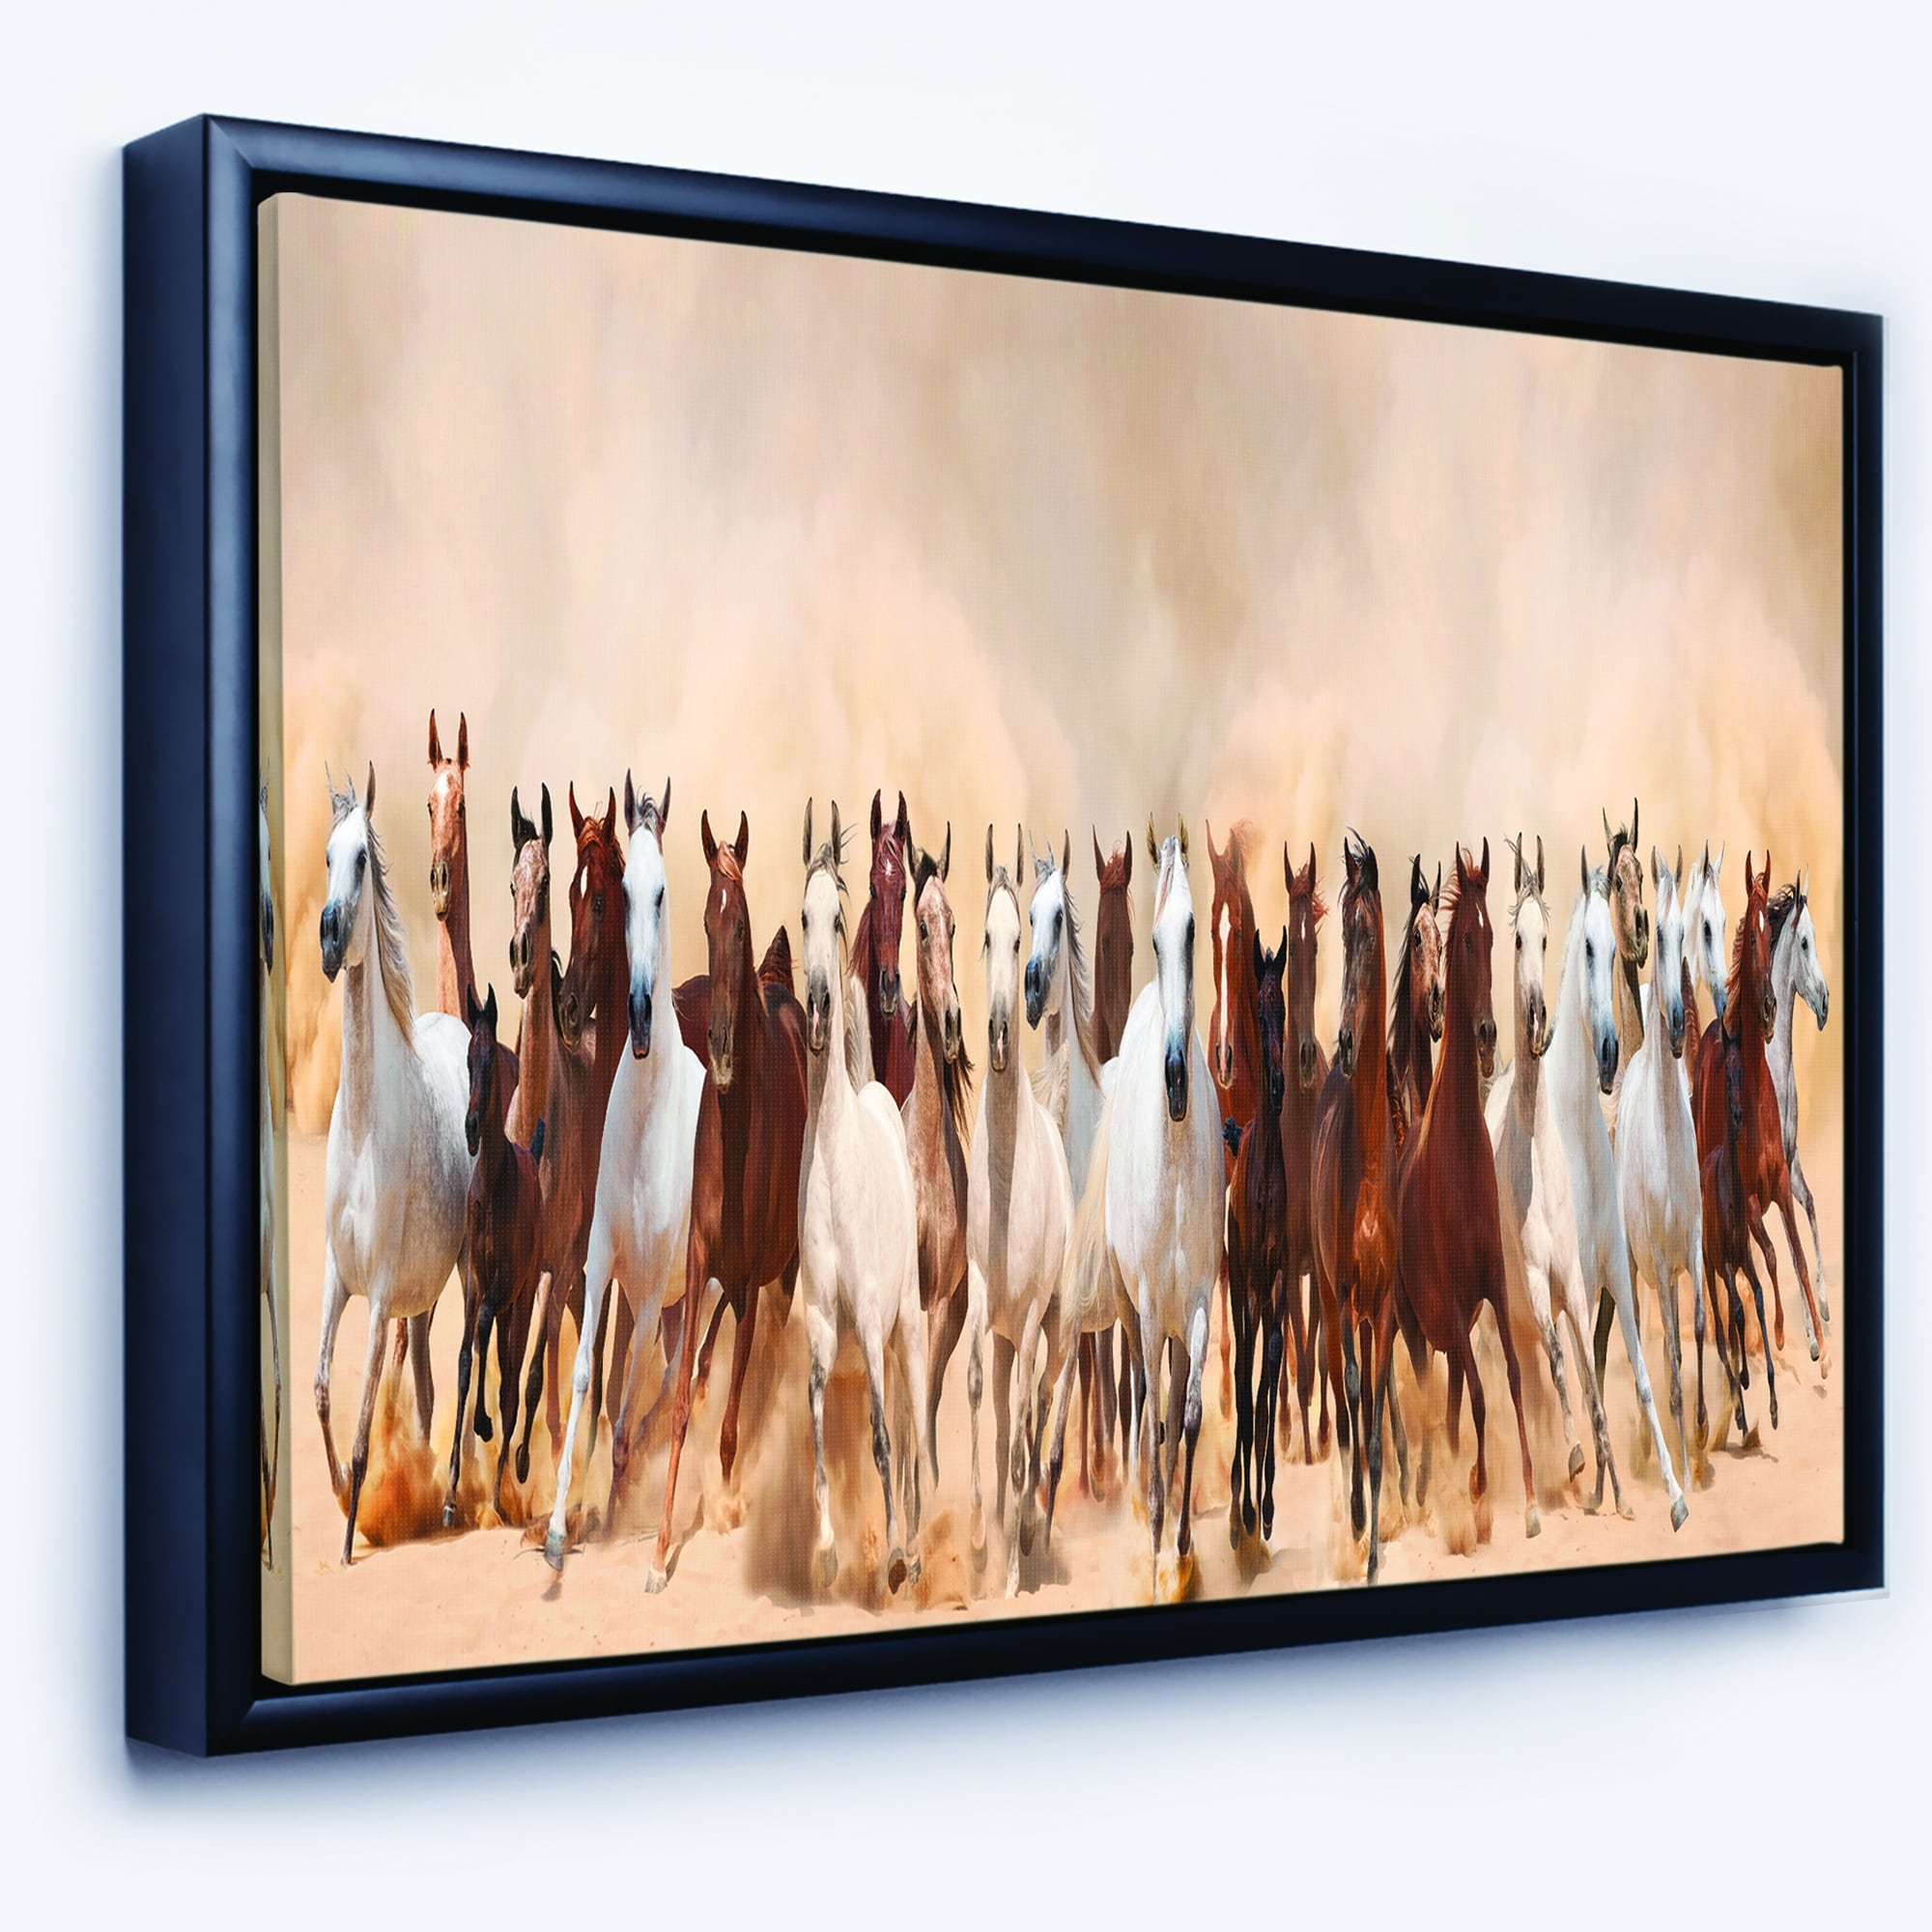 Designart Horses Herd In Sand Storm Landscape Photography Framed Canvas Art Print Overstock 18936208